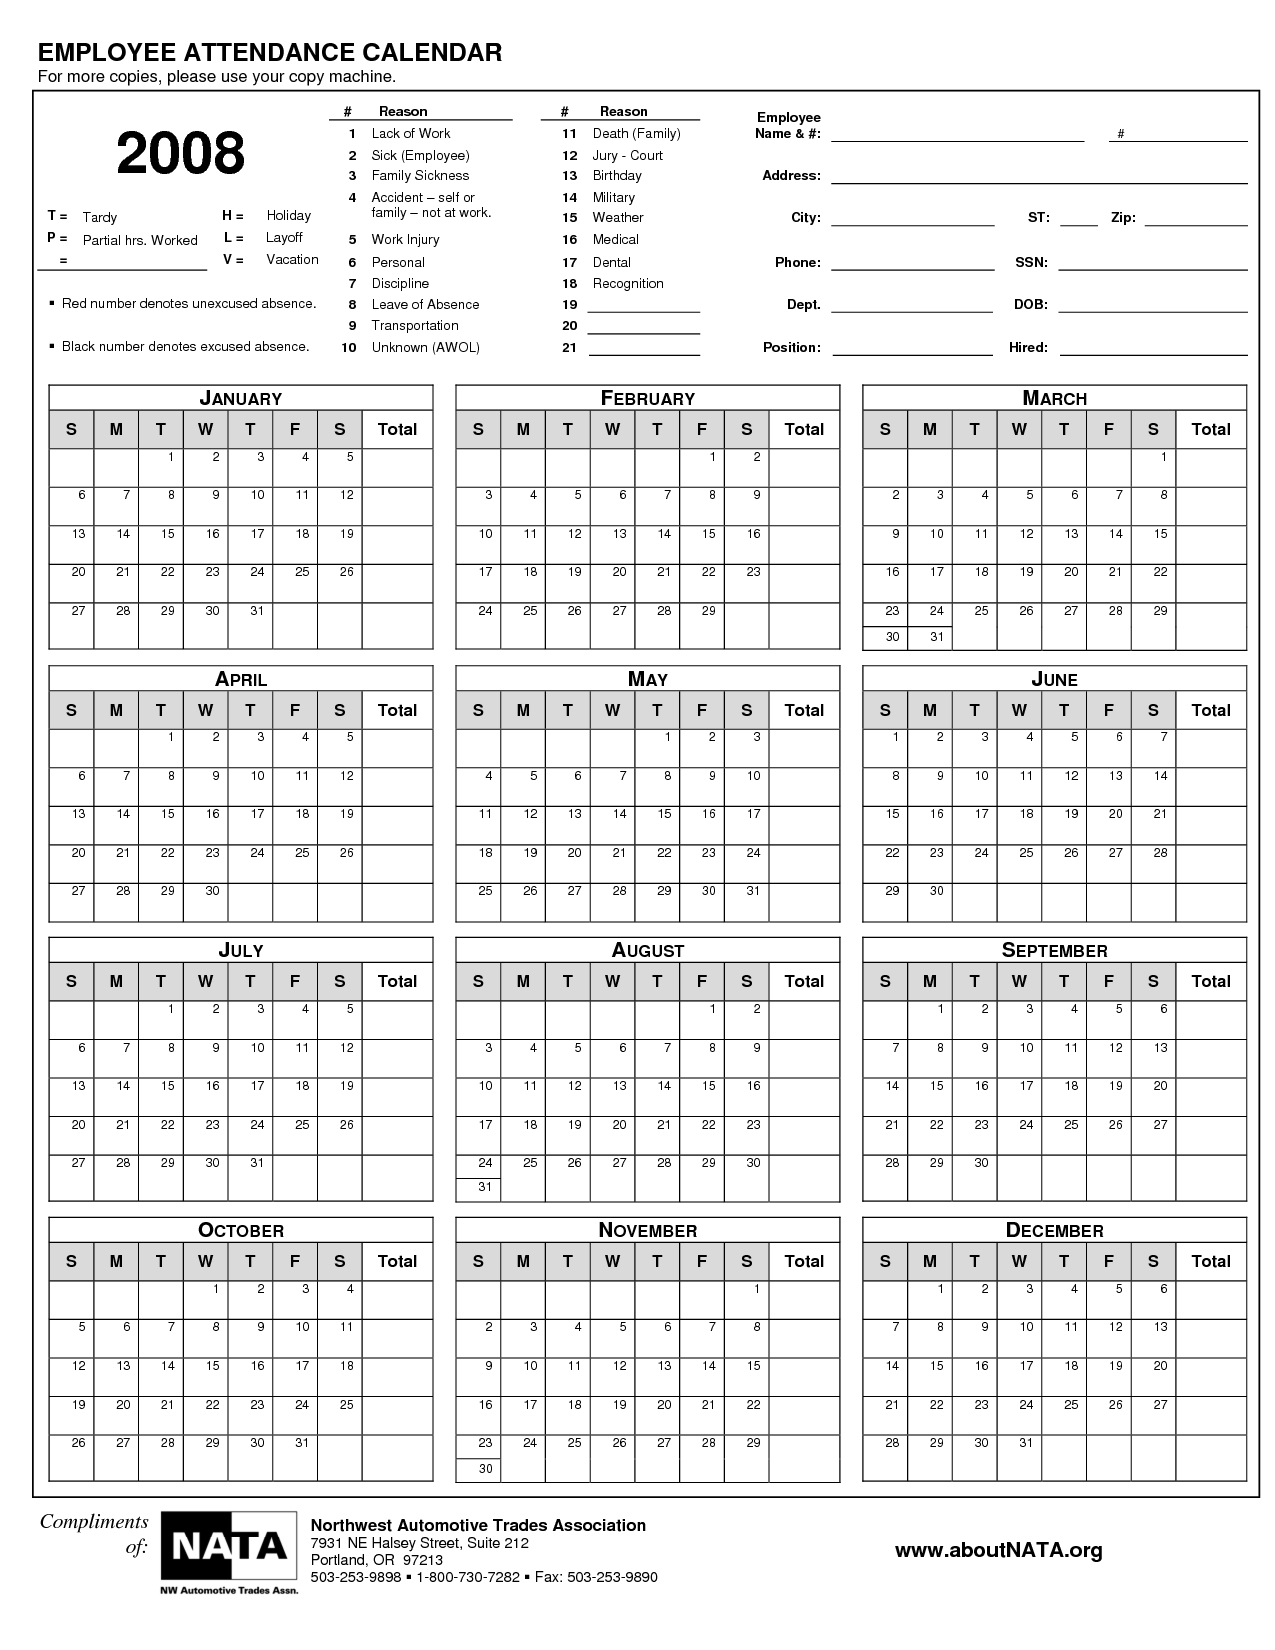 Best Photos Of Free Printable Attendance Calendar 2013 School 89uj